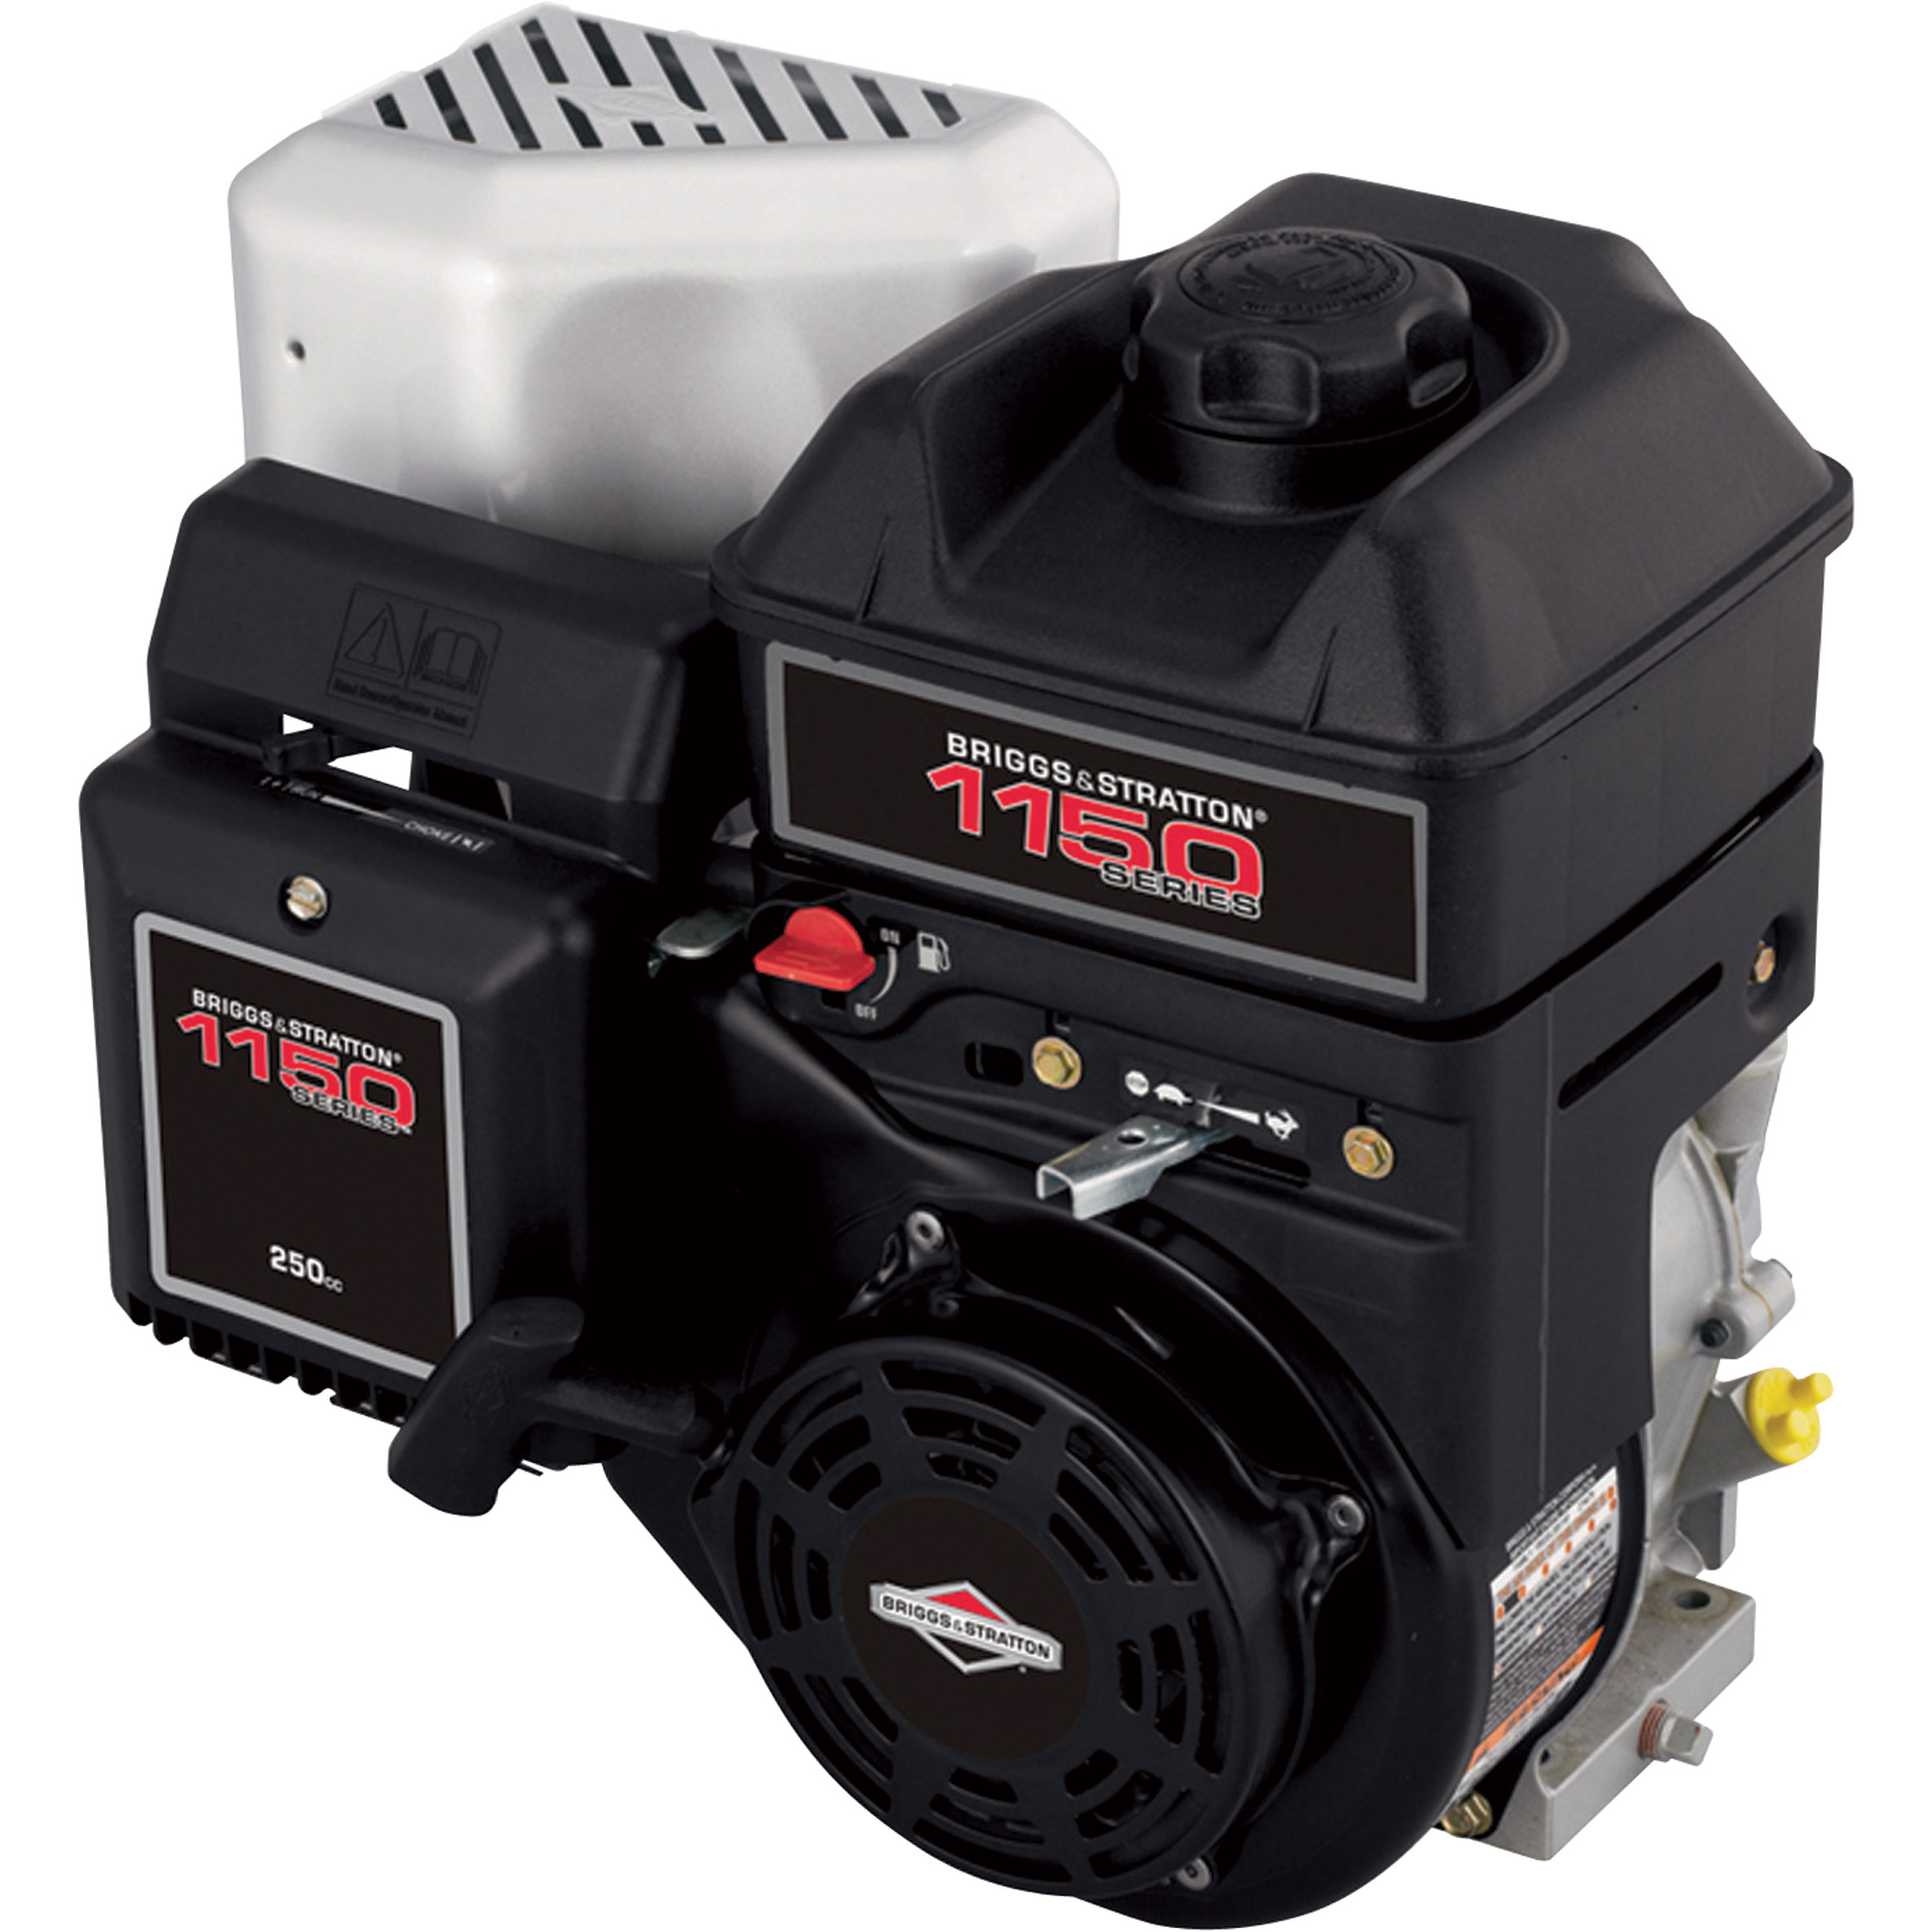 Brings & Stratton Motor For Sale